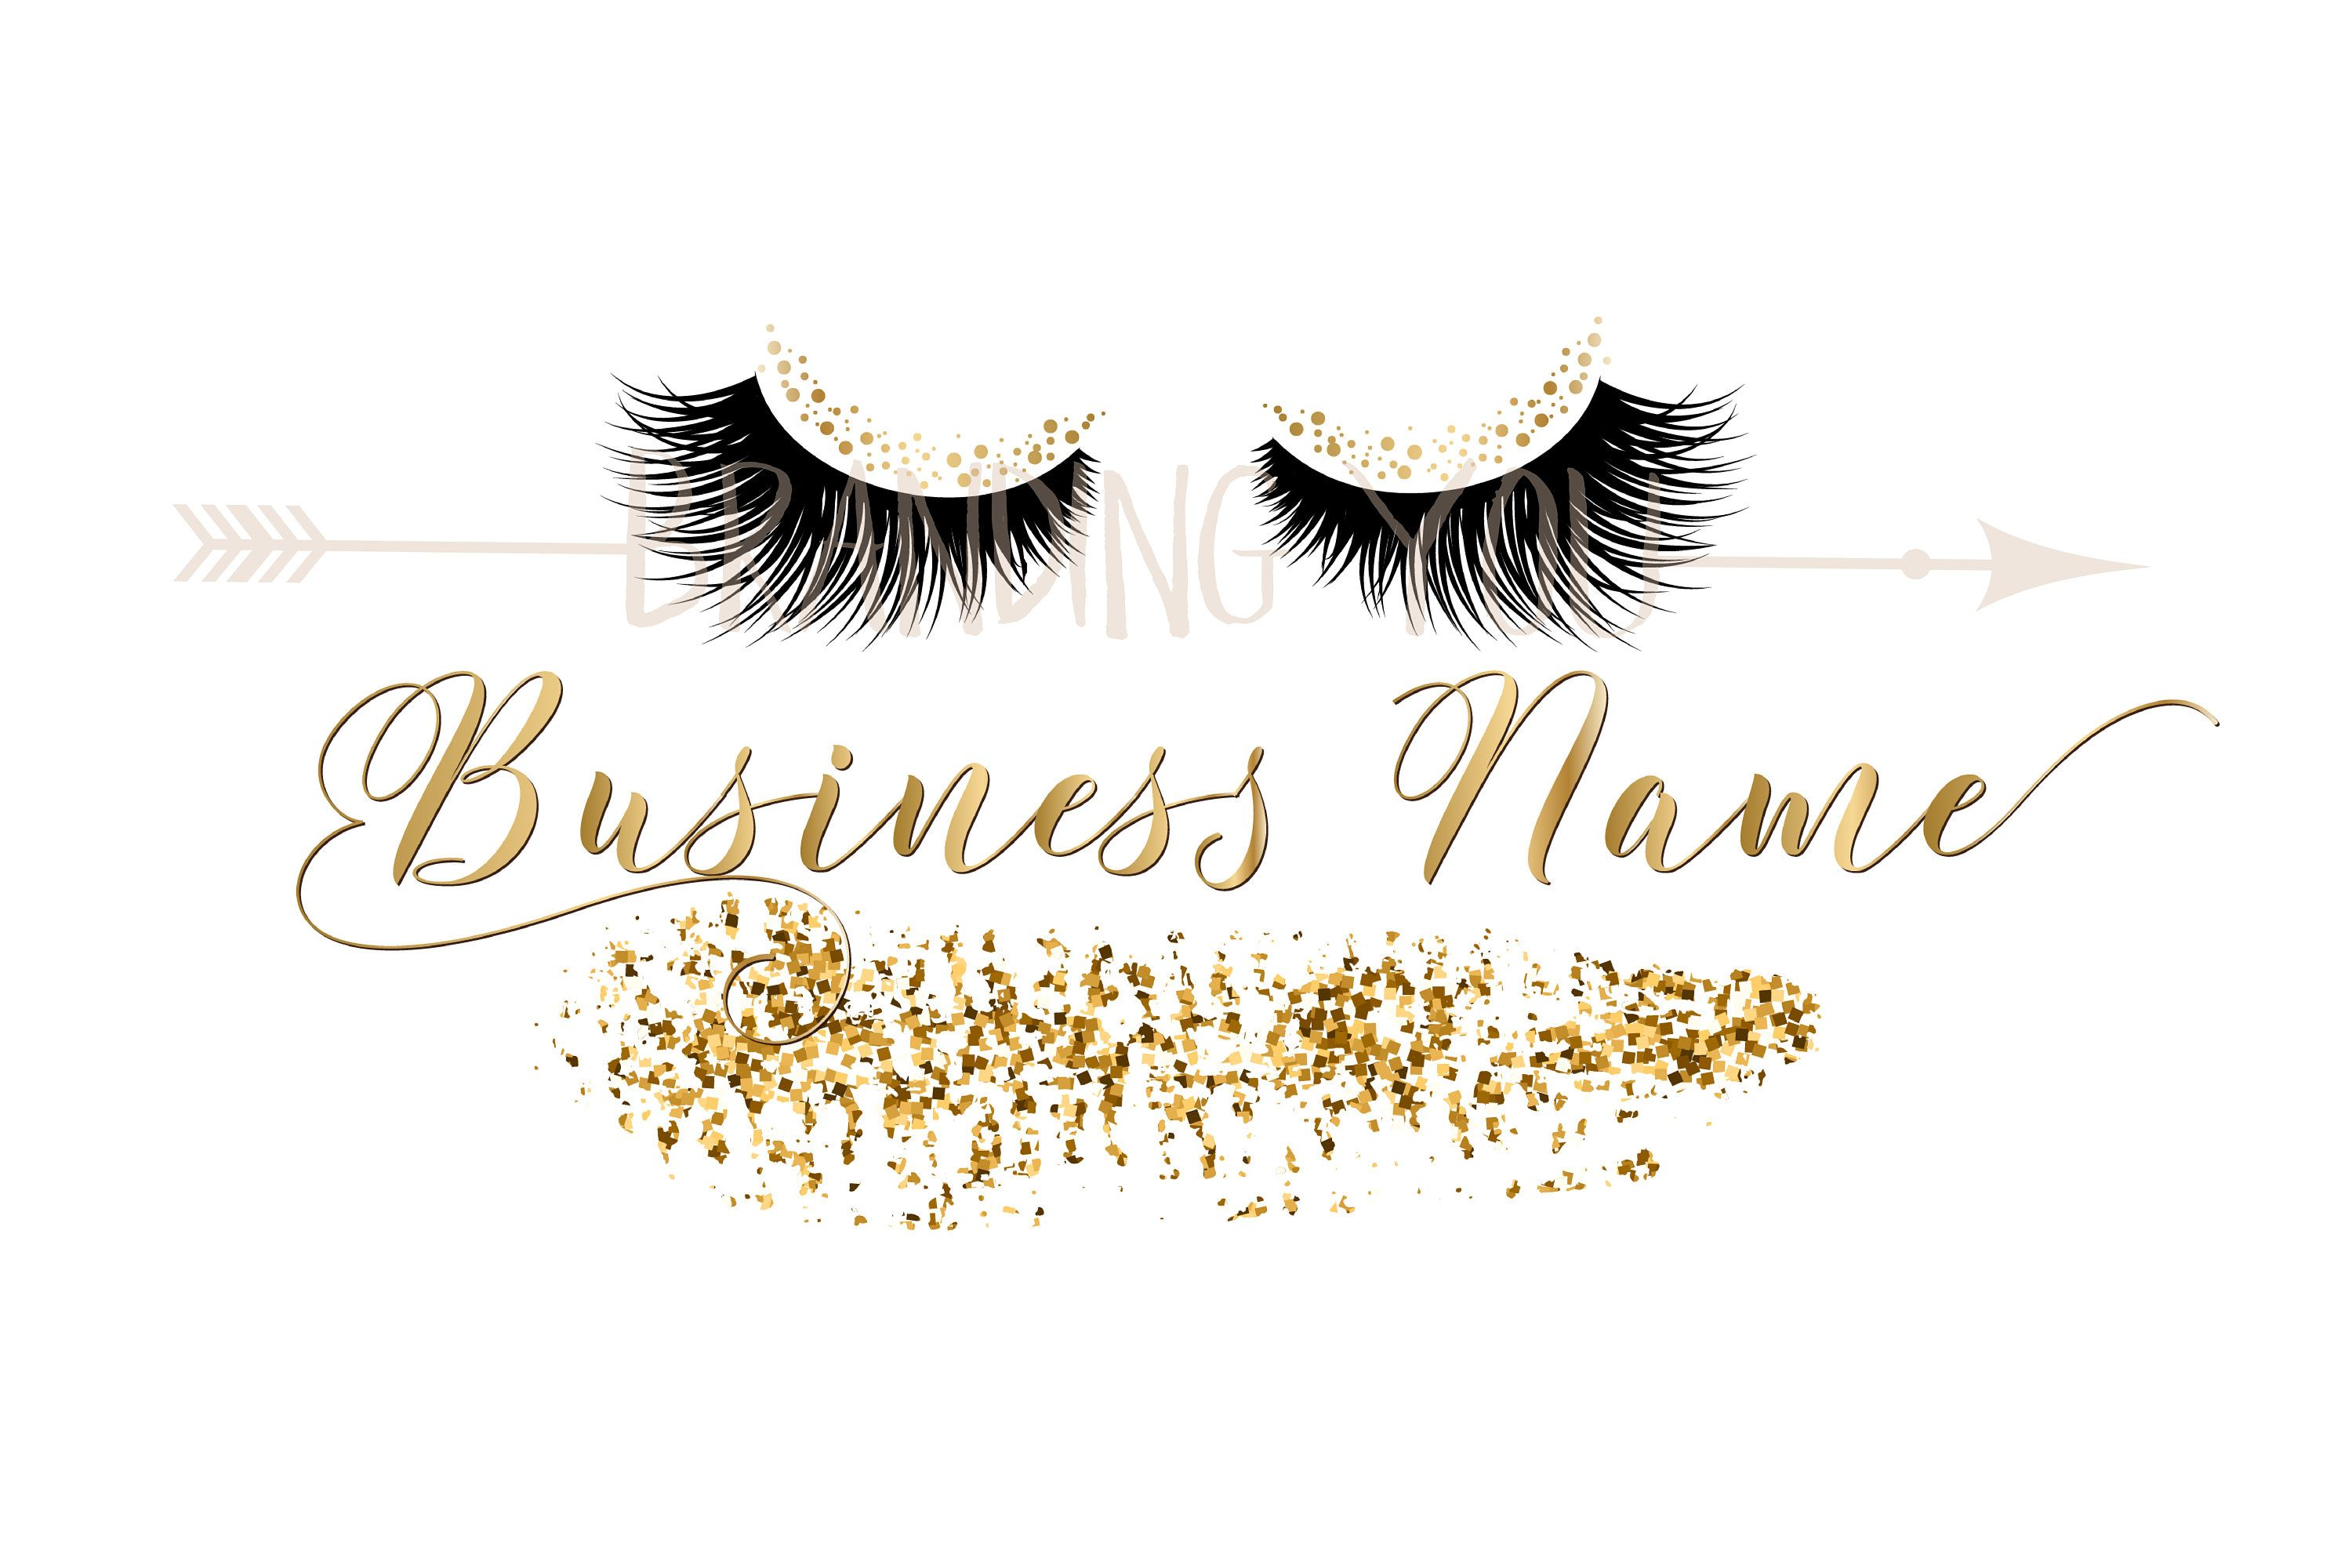 Custom logo, lashes logo, eyelash logo, cosmetics logo, gold